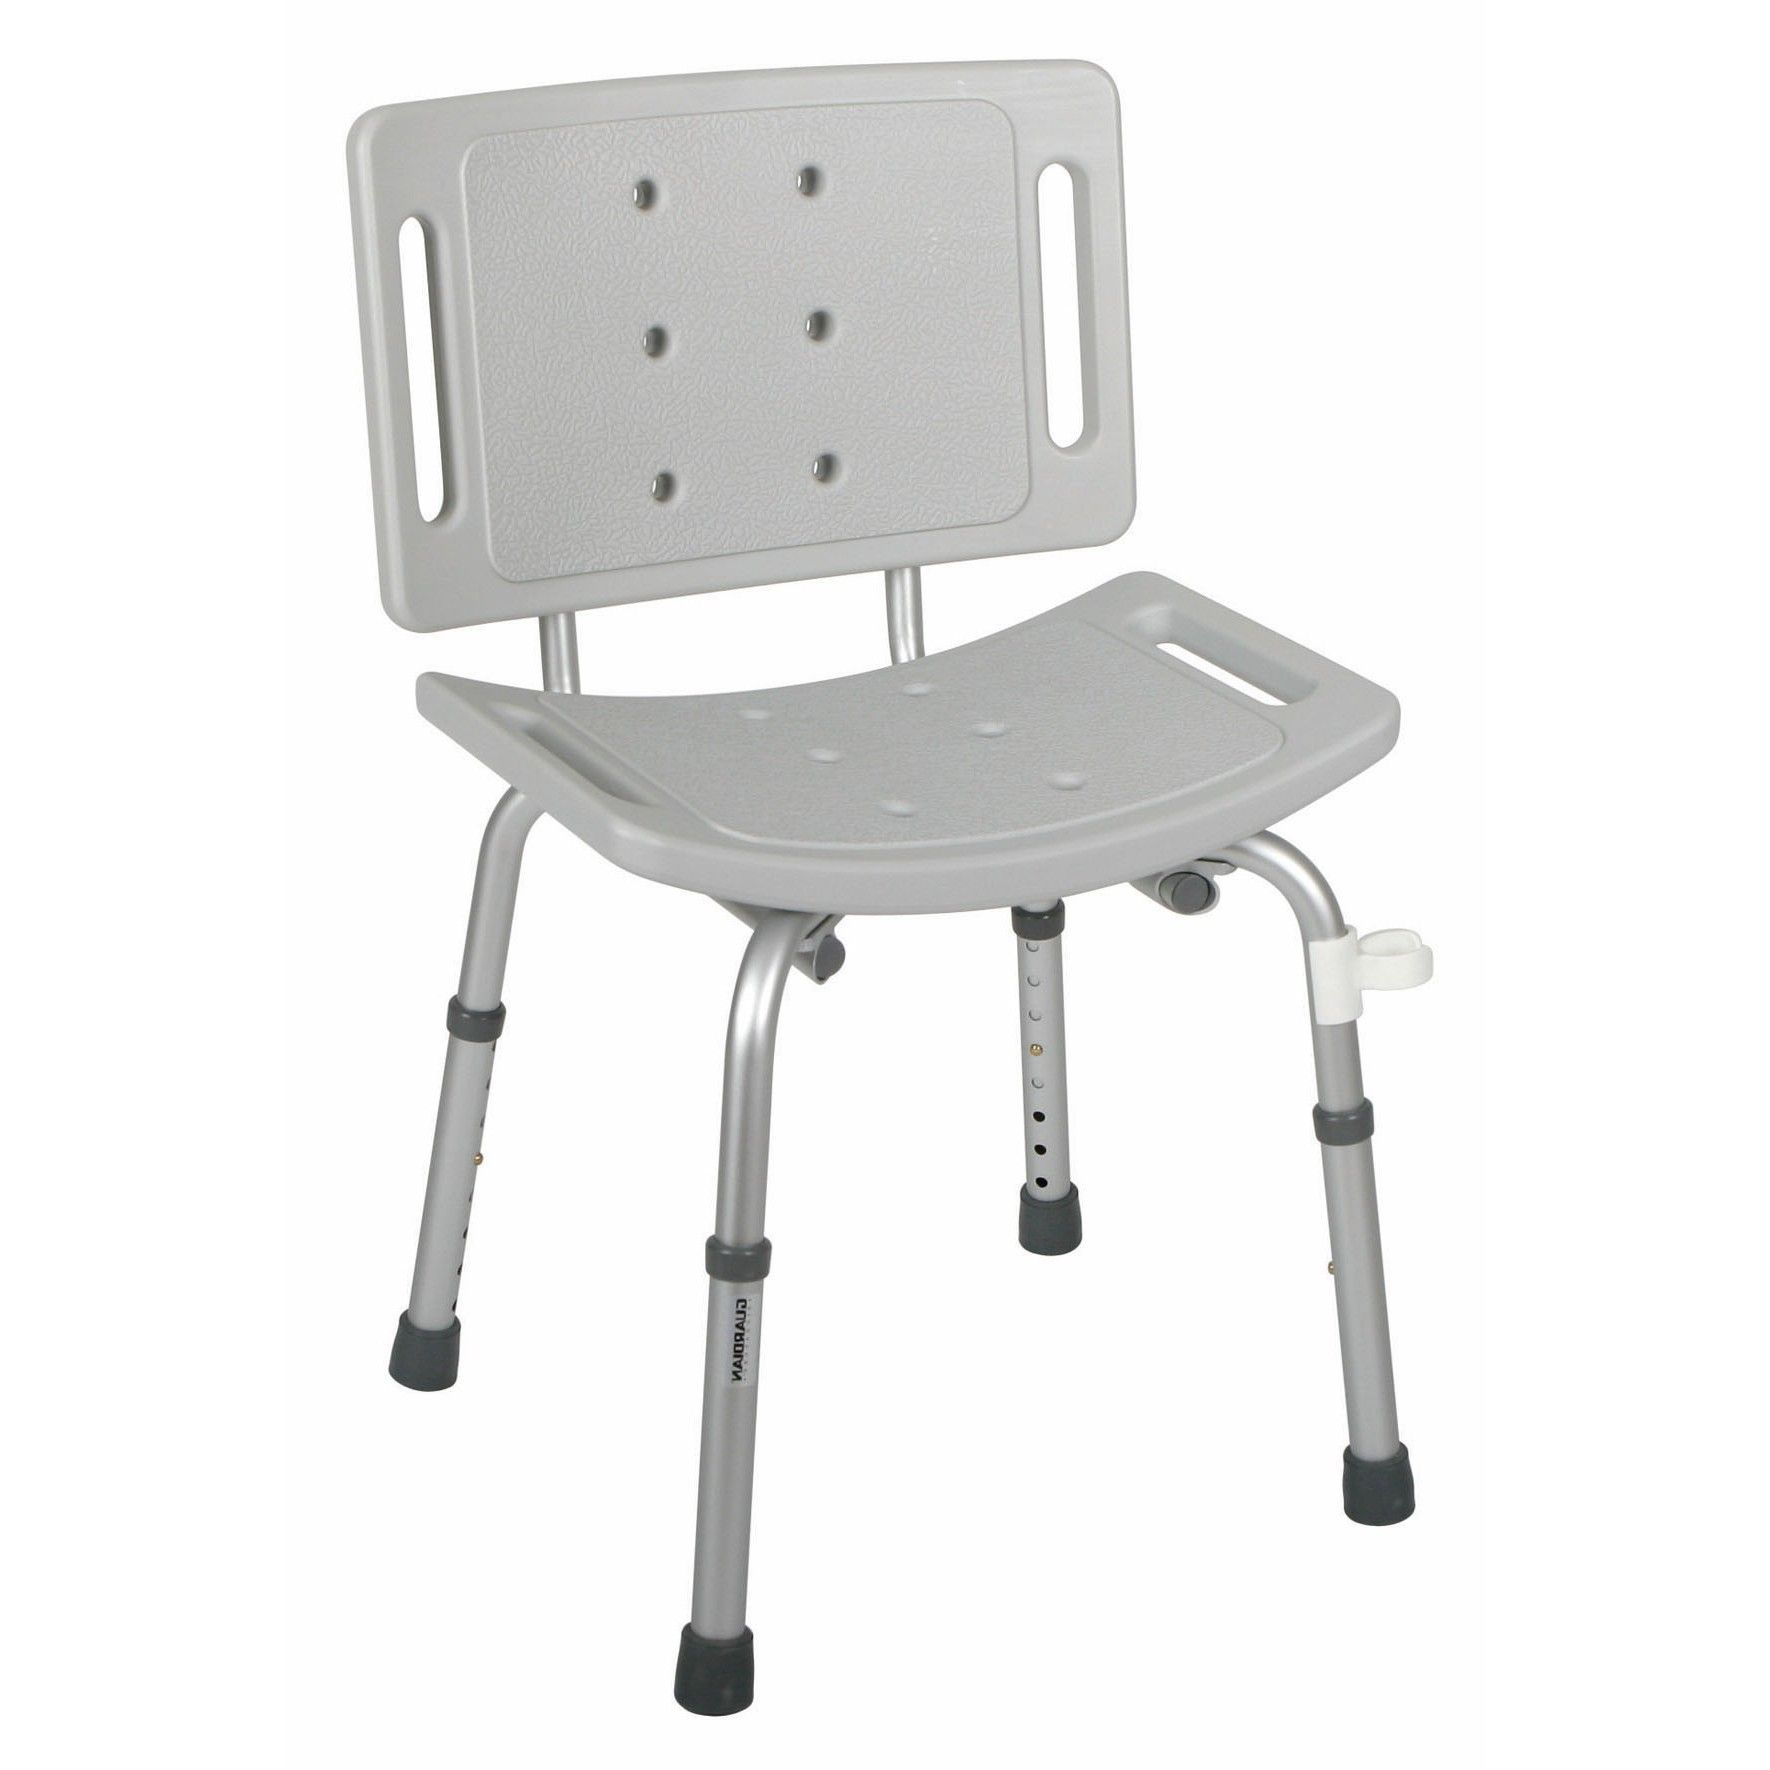 handicap bath chairs roll up office chair mat elderly shower bathtub accessories for disabled bathroom transfer